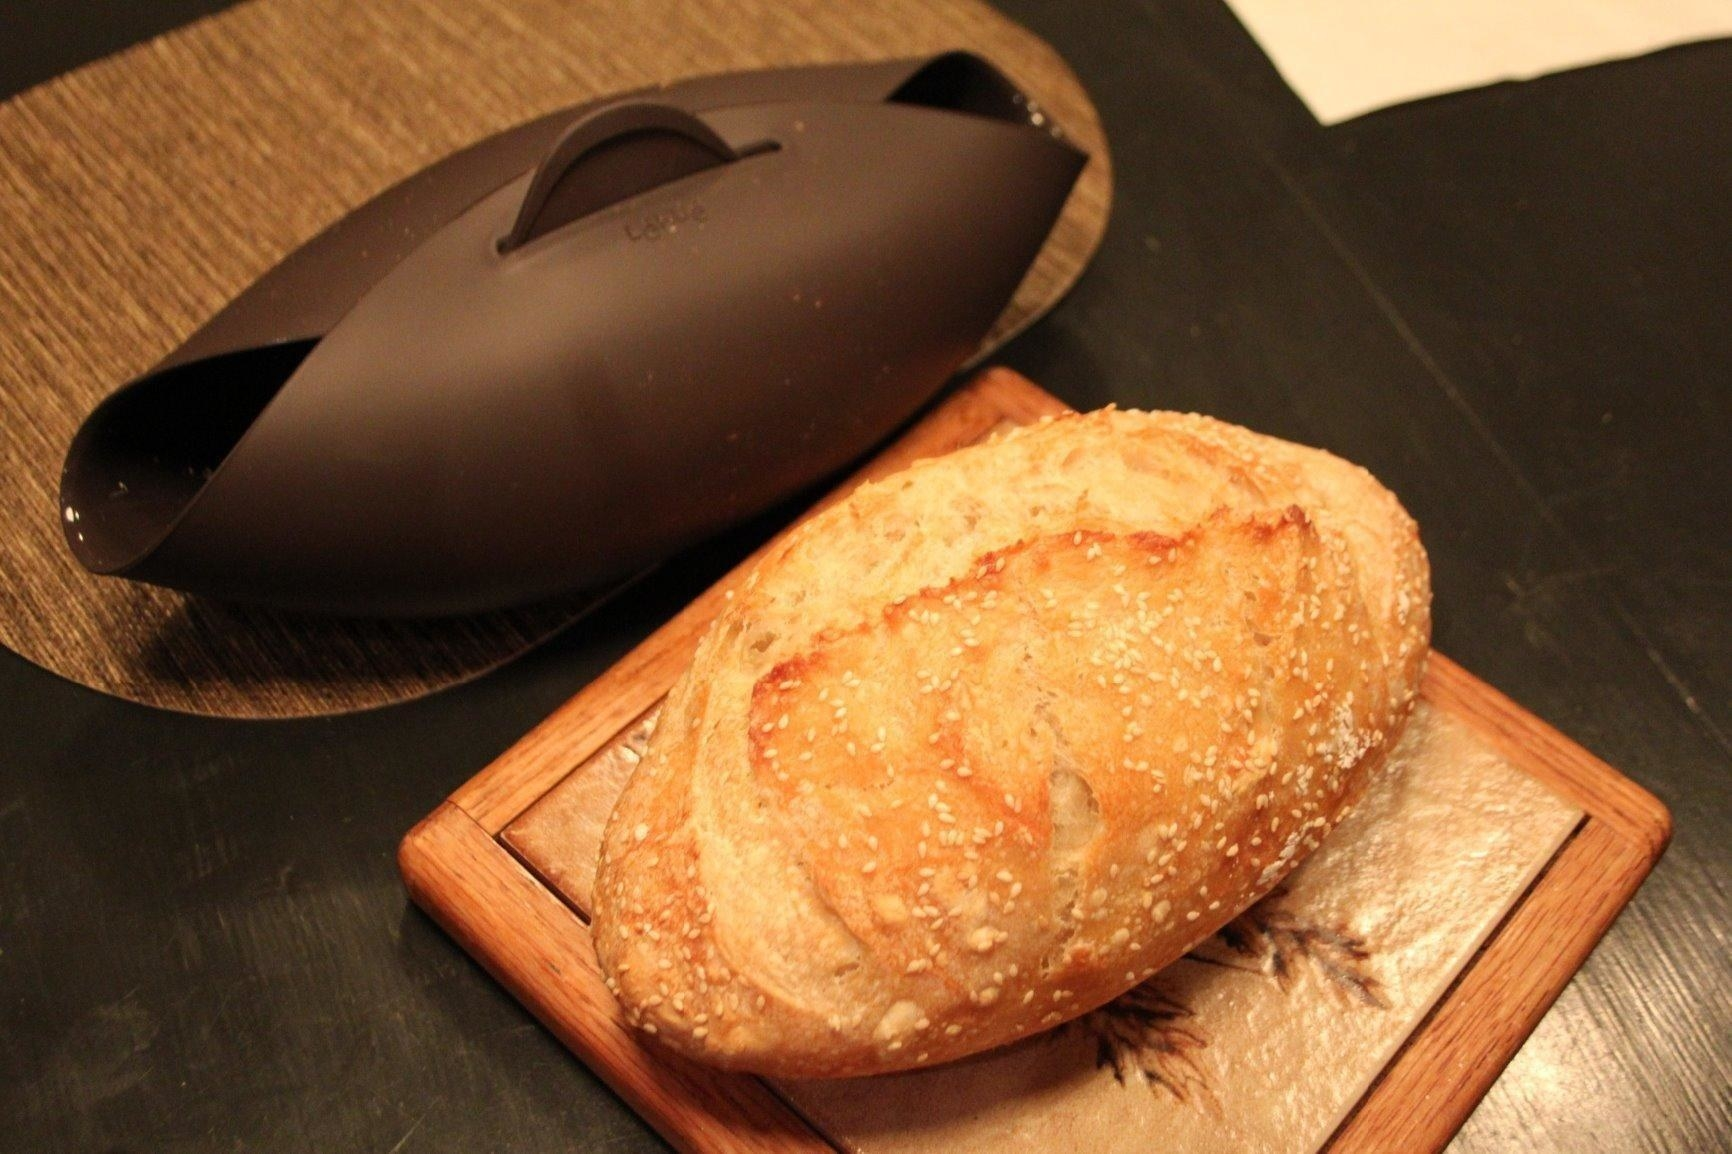 reviewer image of a loaf of bread next to the lekue silicone bread maker